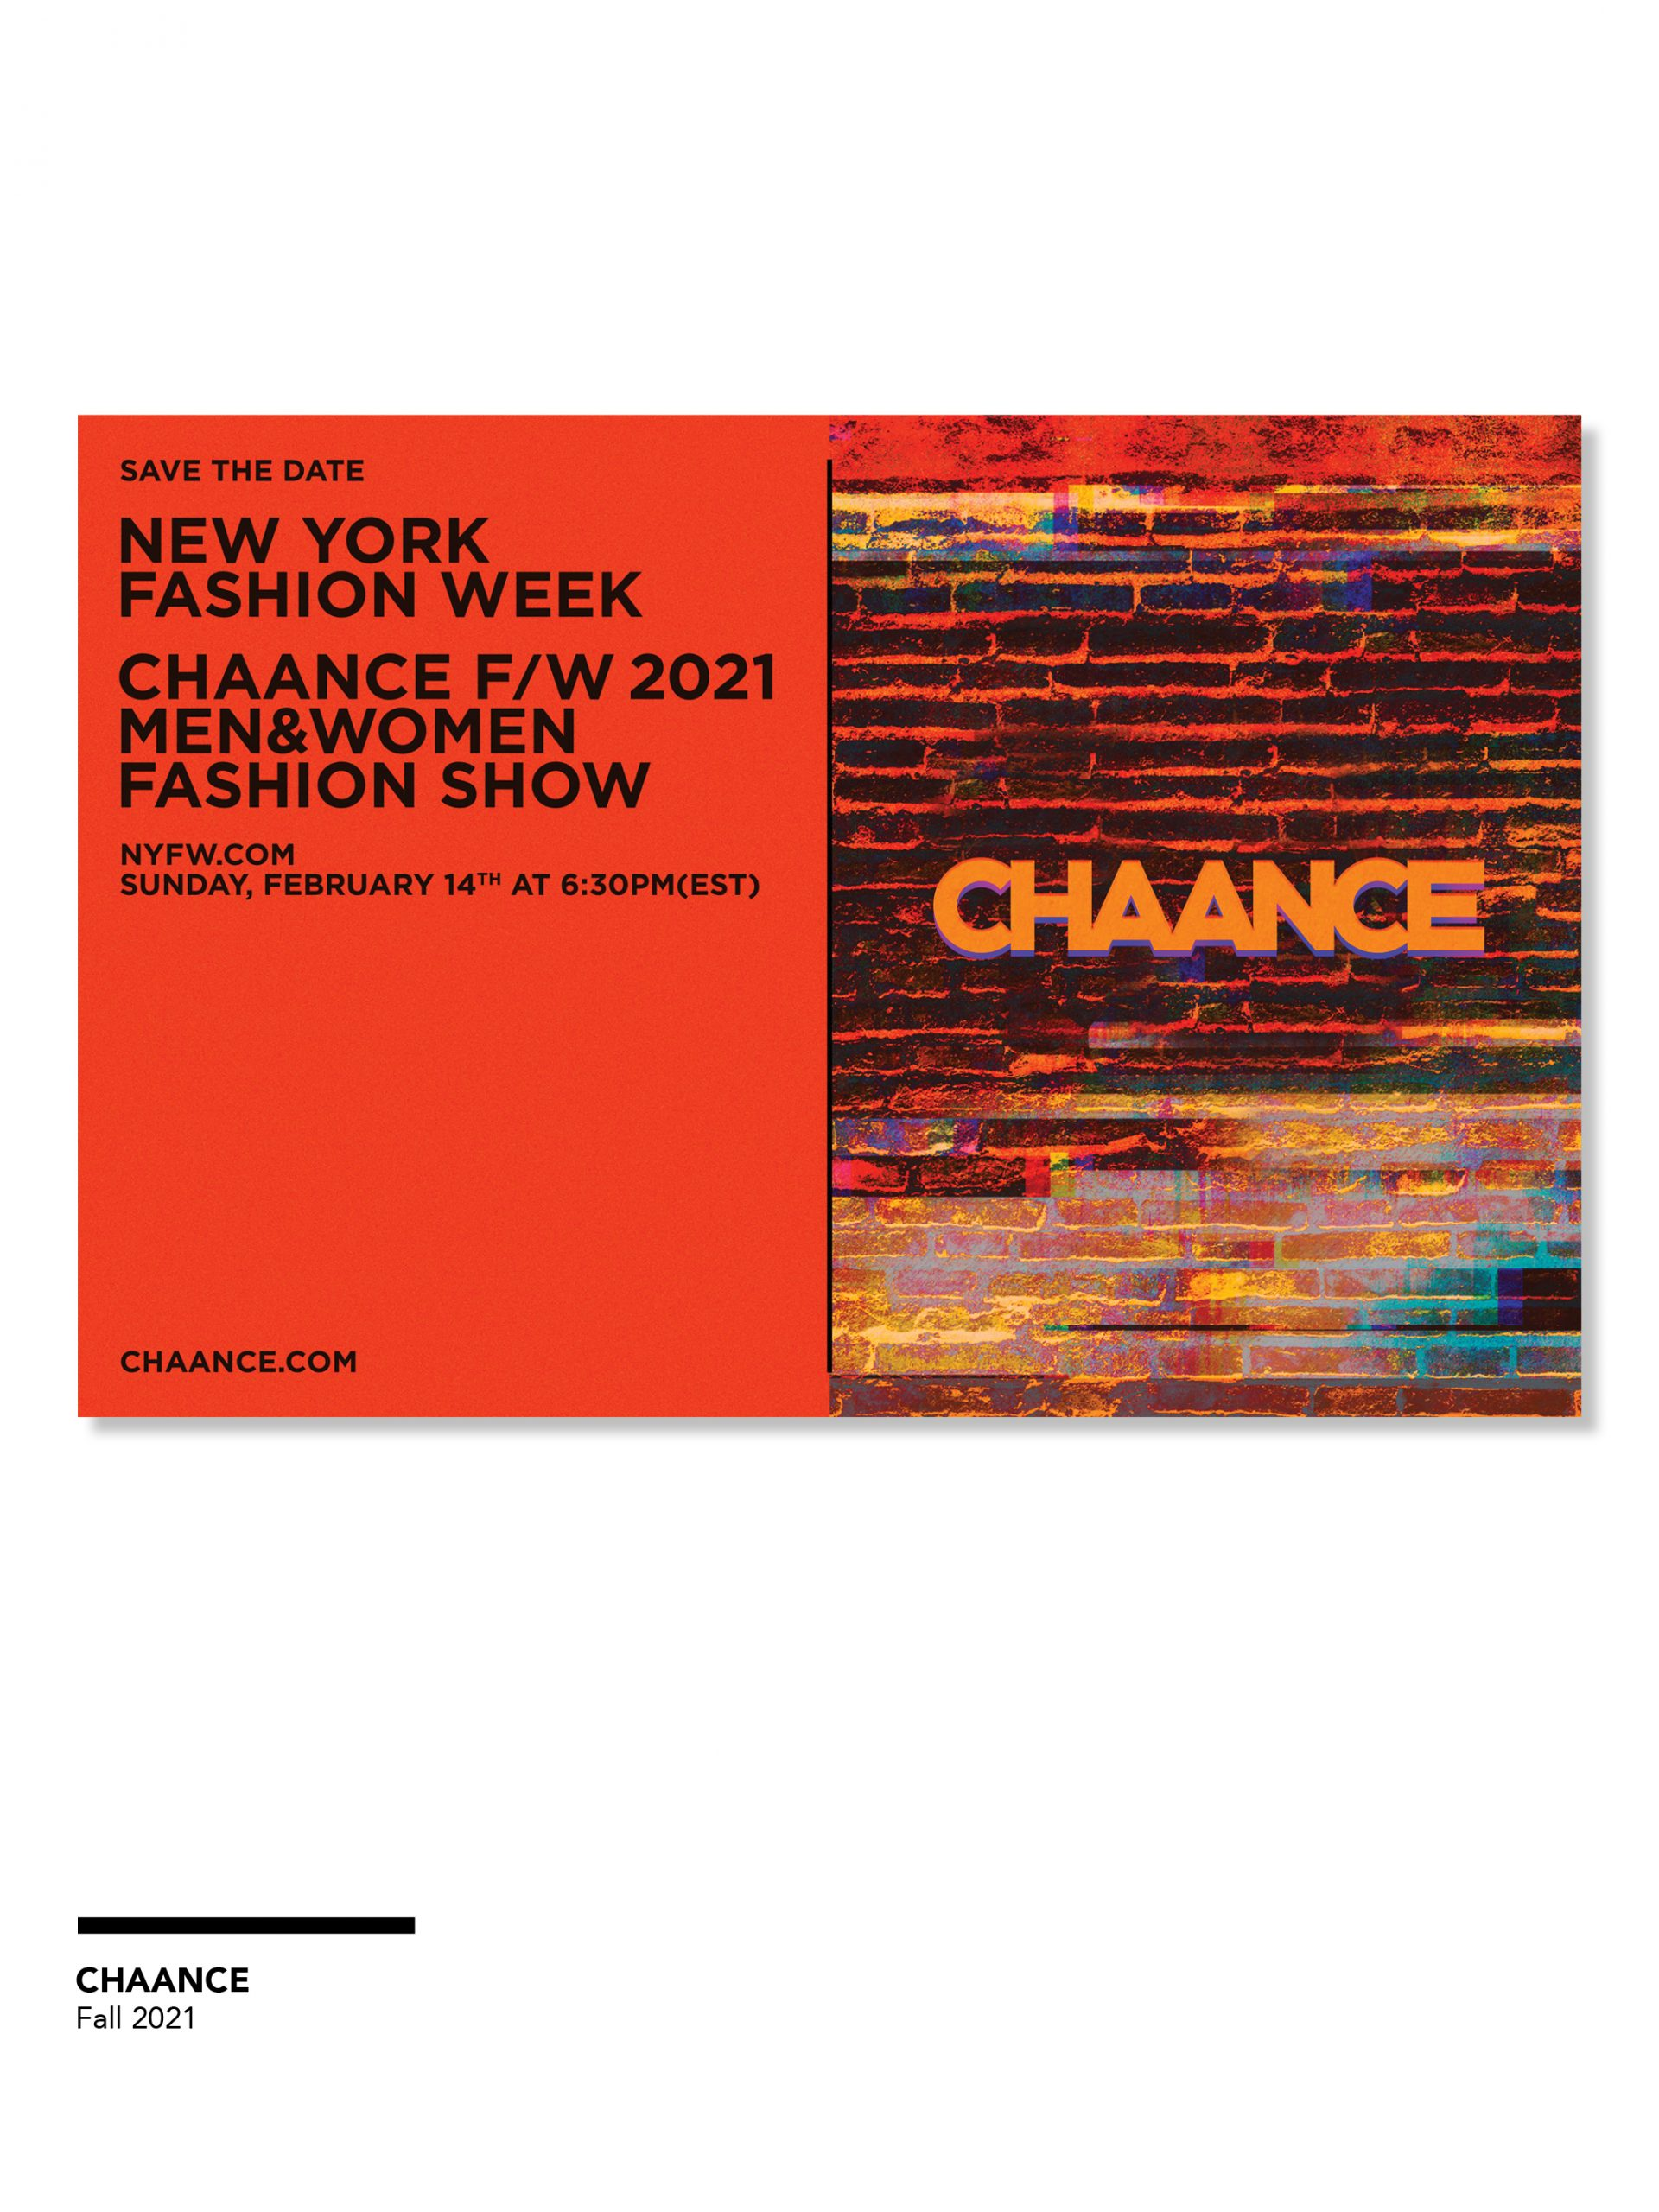 Women's Fashion Show Invitations Photos from Fall 2021